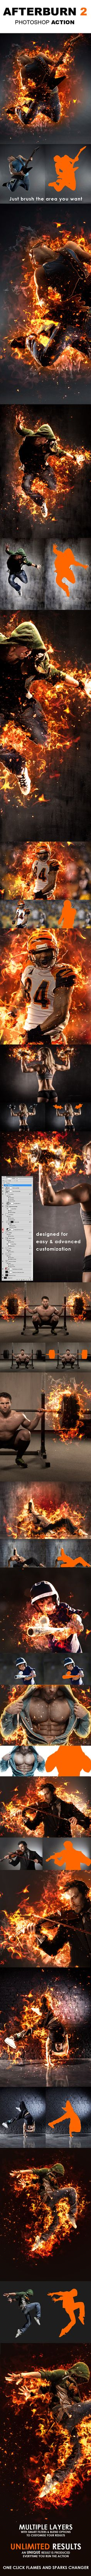 Buy AfterBurn 2 Photoshop Action by Artorius on GraphicRiver. Watch video tutorial AfterBurn 2 Part of the Afterburn series, AfterBurn 2 is a Photoshop action that will add sophis. Cool Photoshop, Effects Photoshop, Best Photoshop Actions, Photoshop Photos, Photoshop Design, Photoshop Brushes, Photoshop Tutorial, Photoshop Elements, Fotografia Tutorial